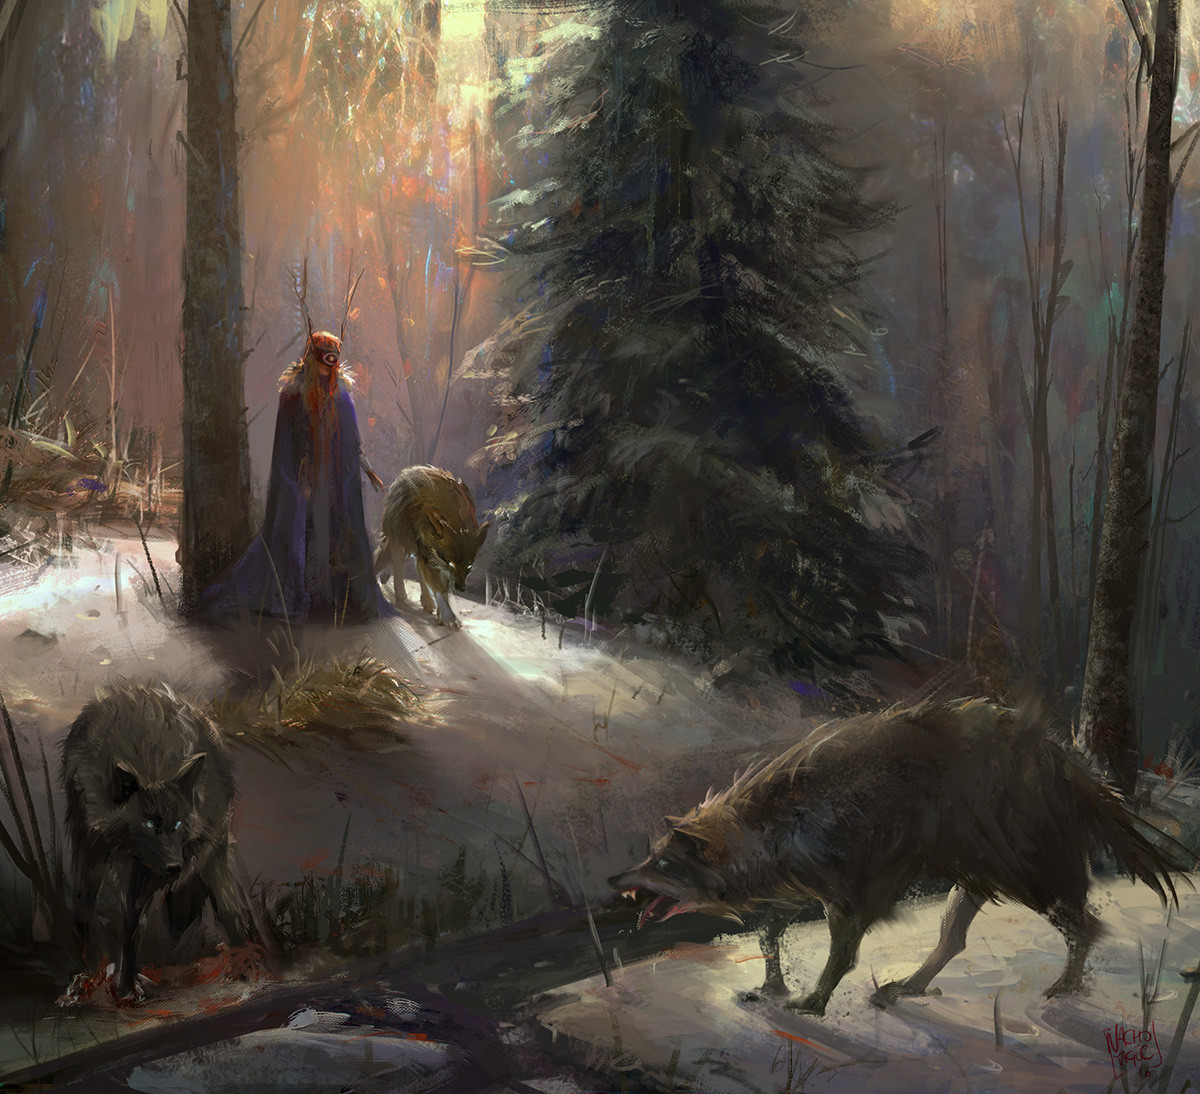 Nacho Yague Digital Painting Concept art personnal work forest